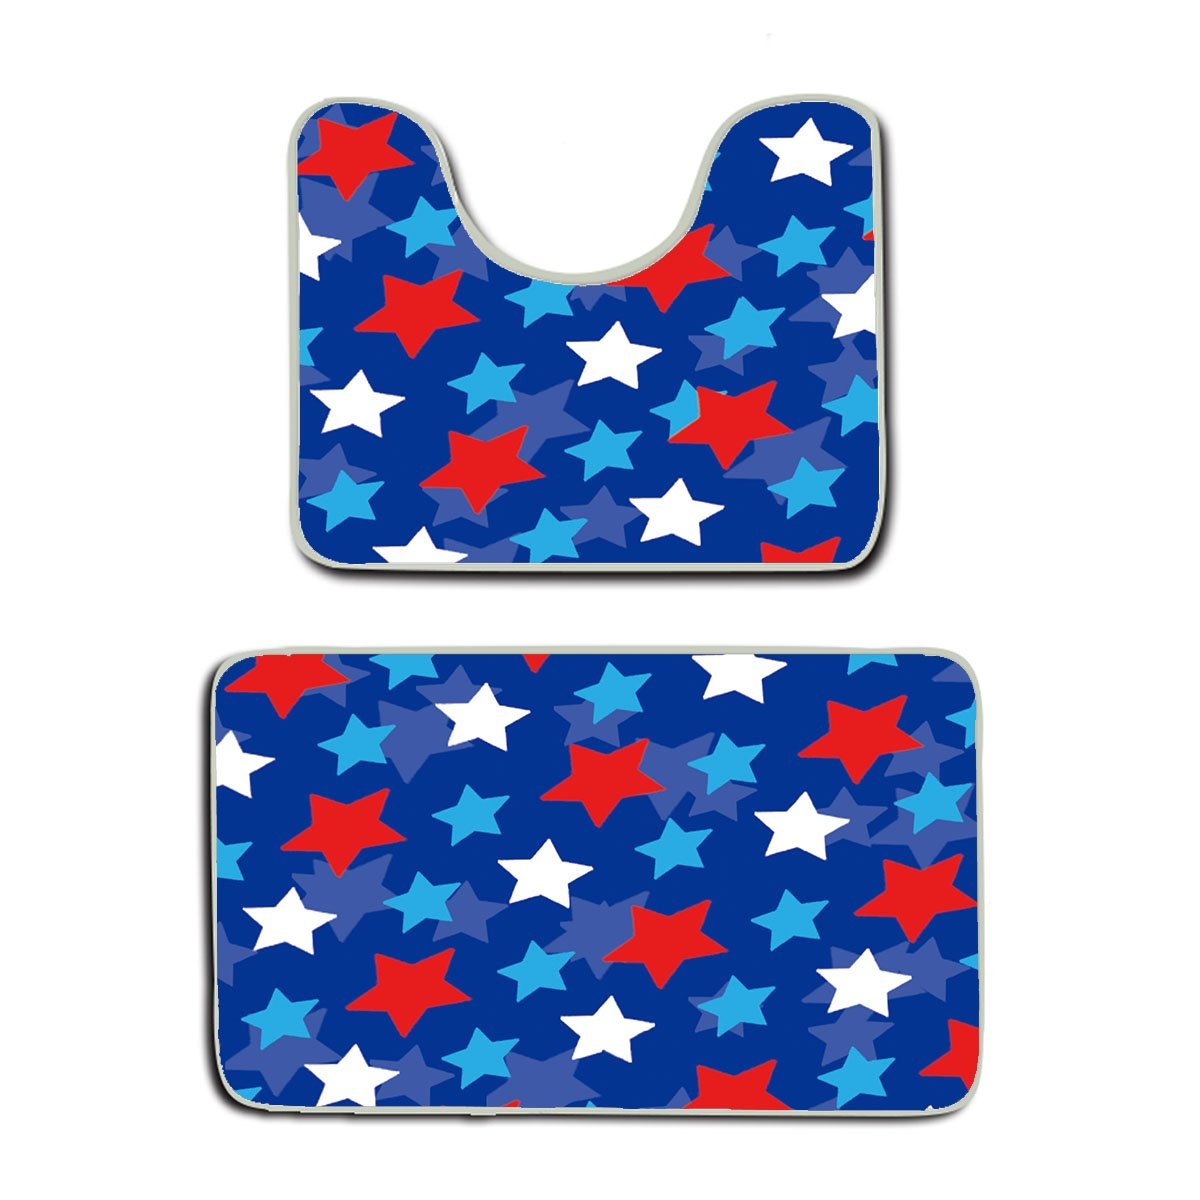 AMERICAN TANG American Flag Inspired Patriotic Design With Stars Bathroom Rug Mats Set 2 Piece,Funny Bathroom Rugs Graphic Bathroom Sets,Anti-skid Toilet Mat Set